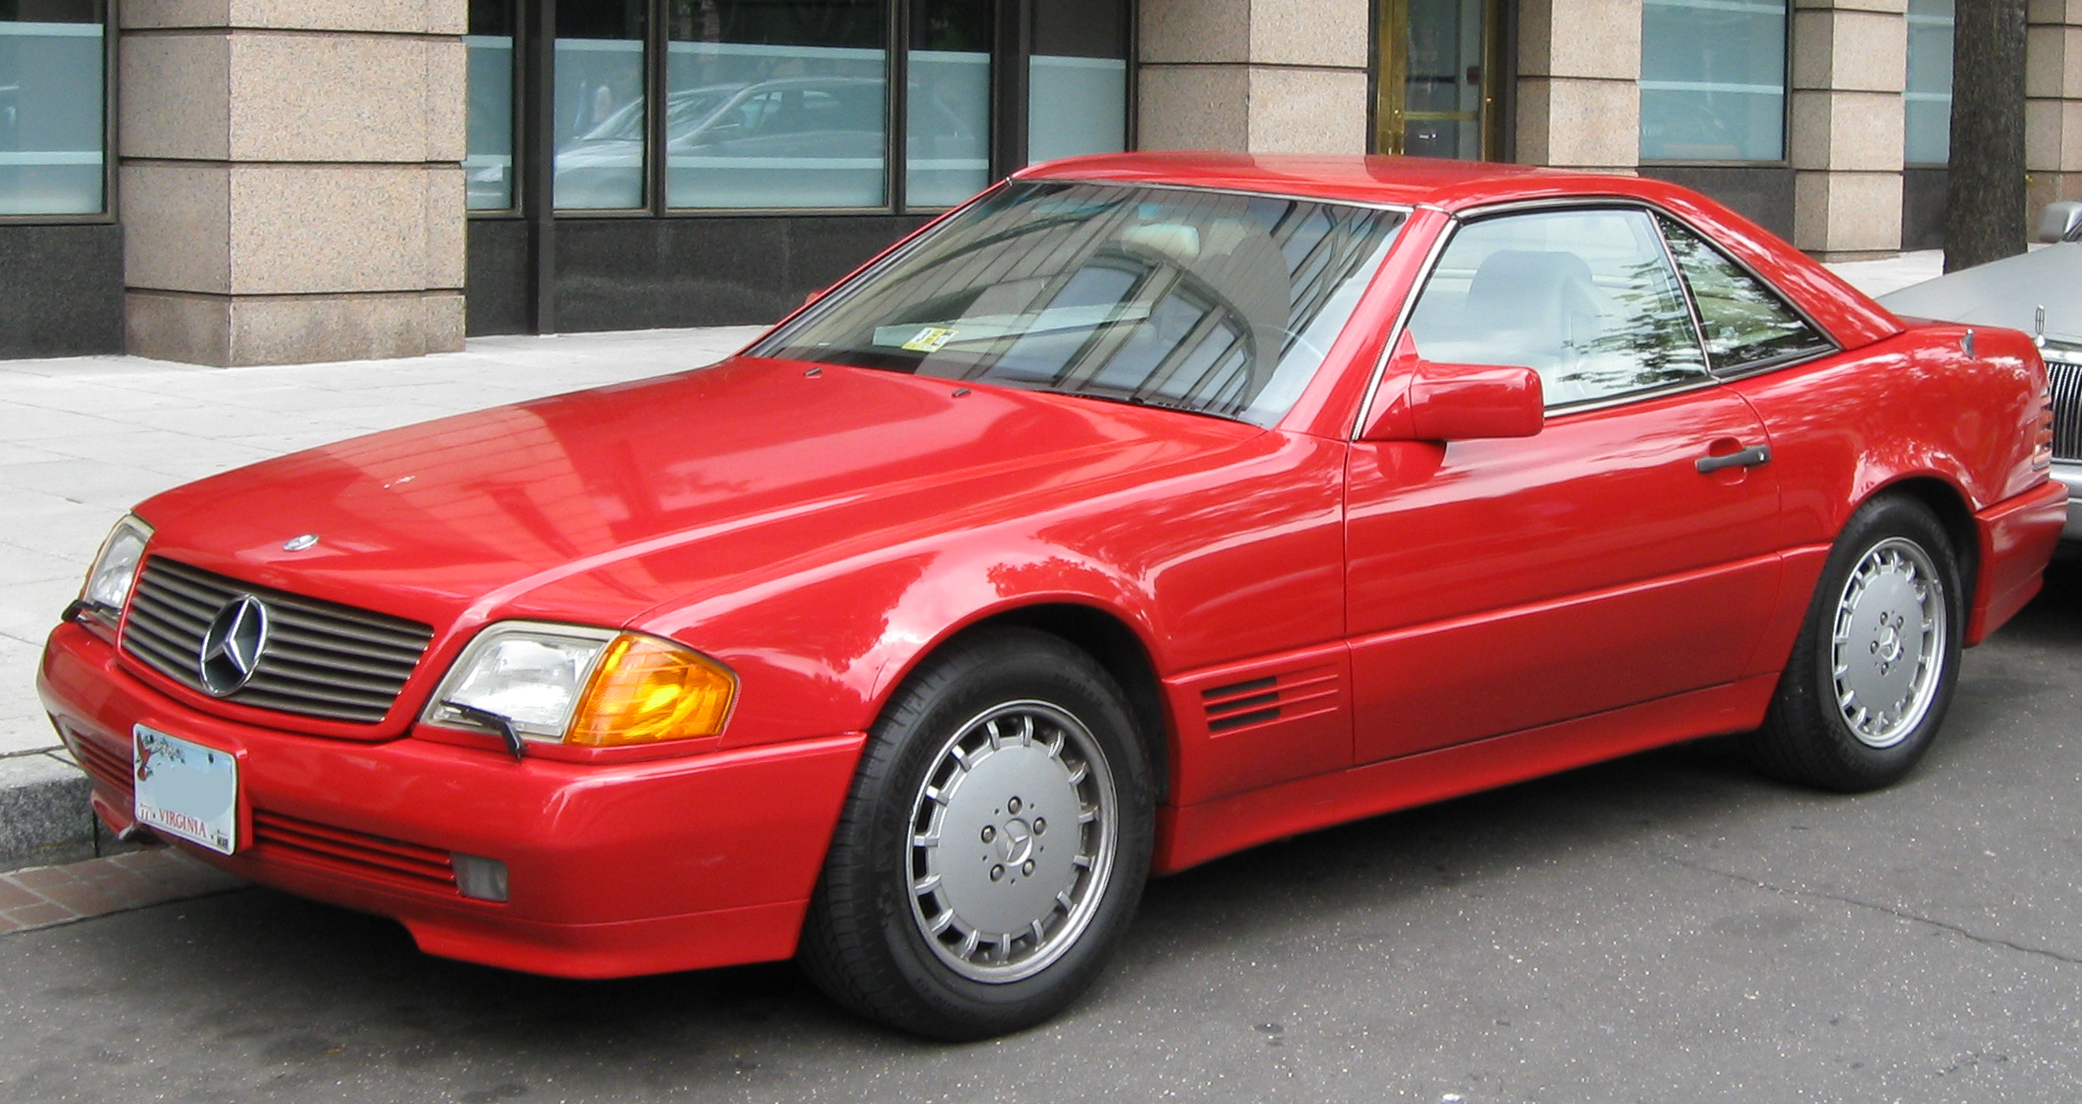 Mercedes benz r129 wikiwand for 90s mercedes benz